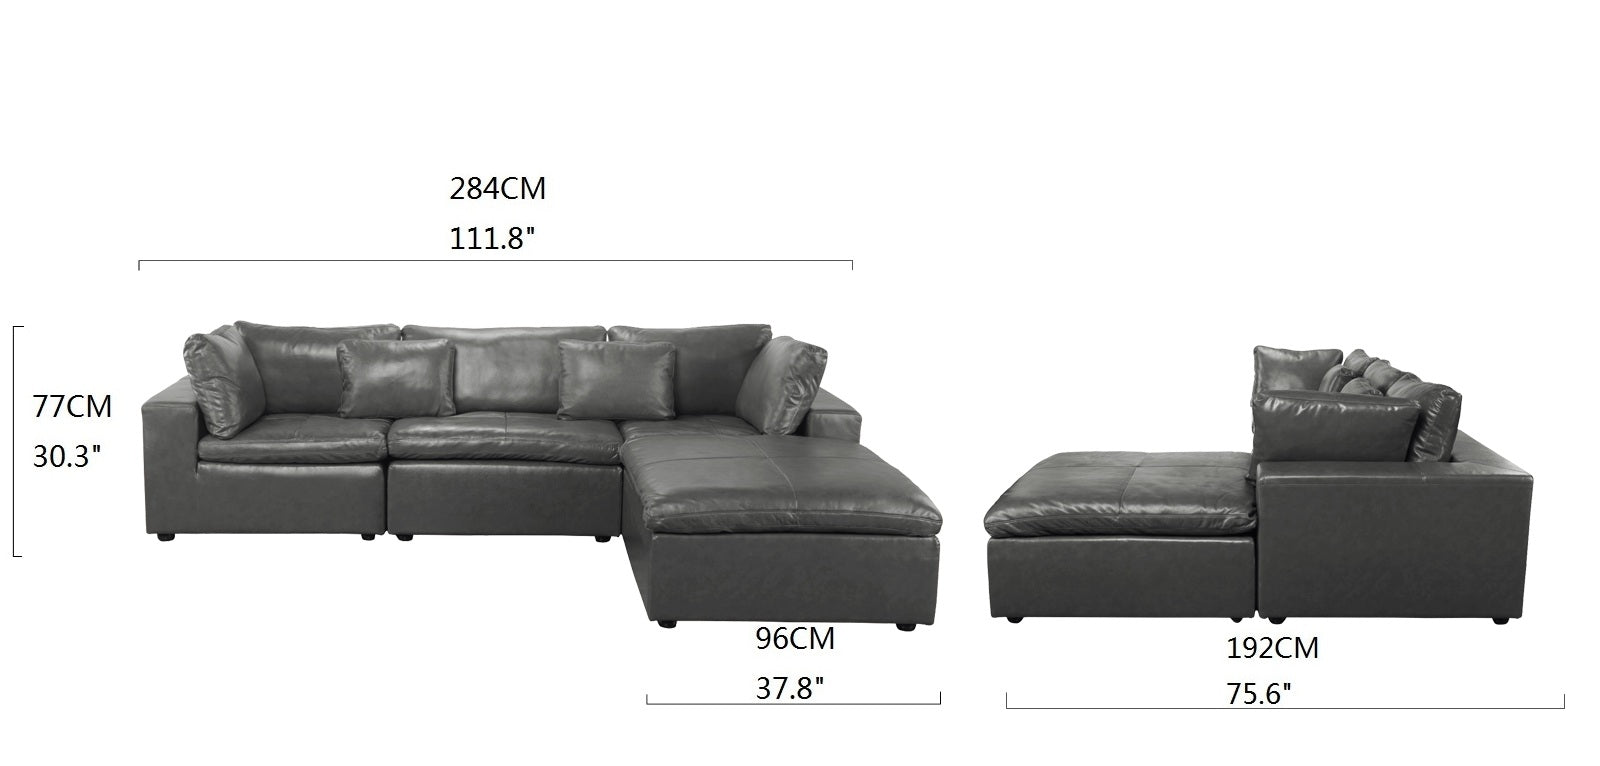 Sigur Modern Leather Match Sectional Sofa with Chaise